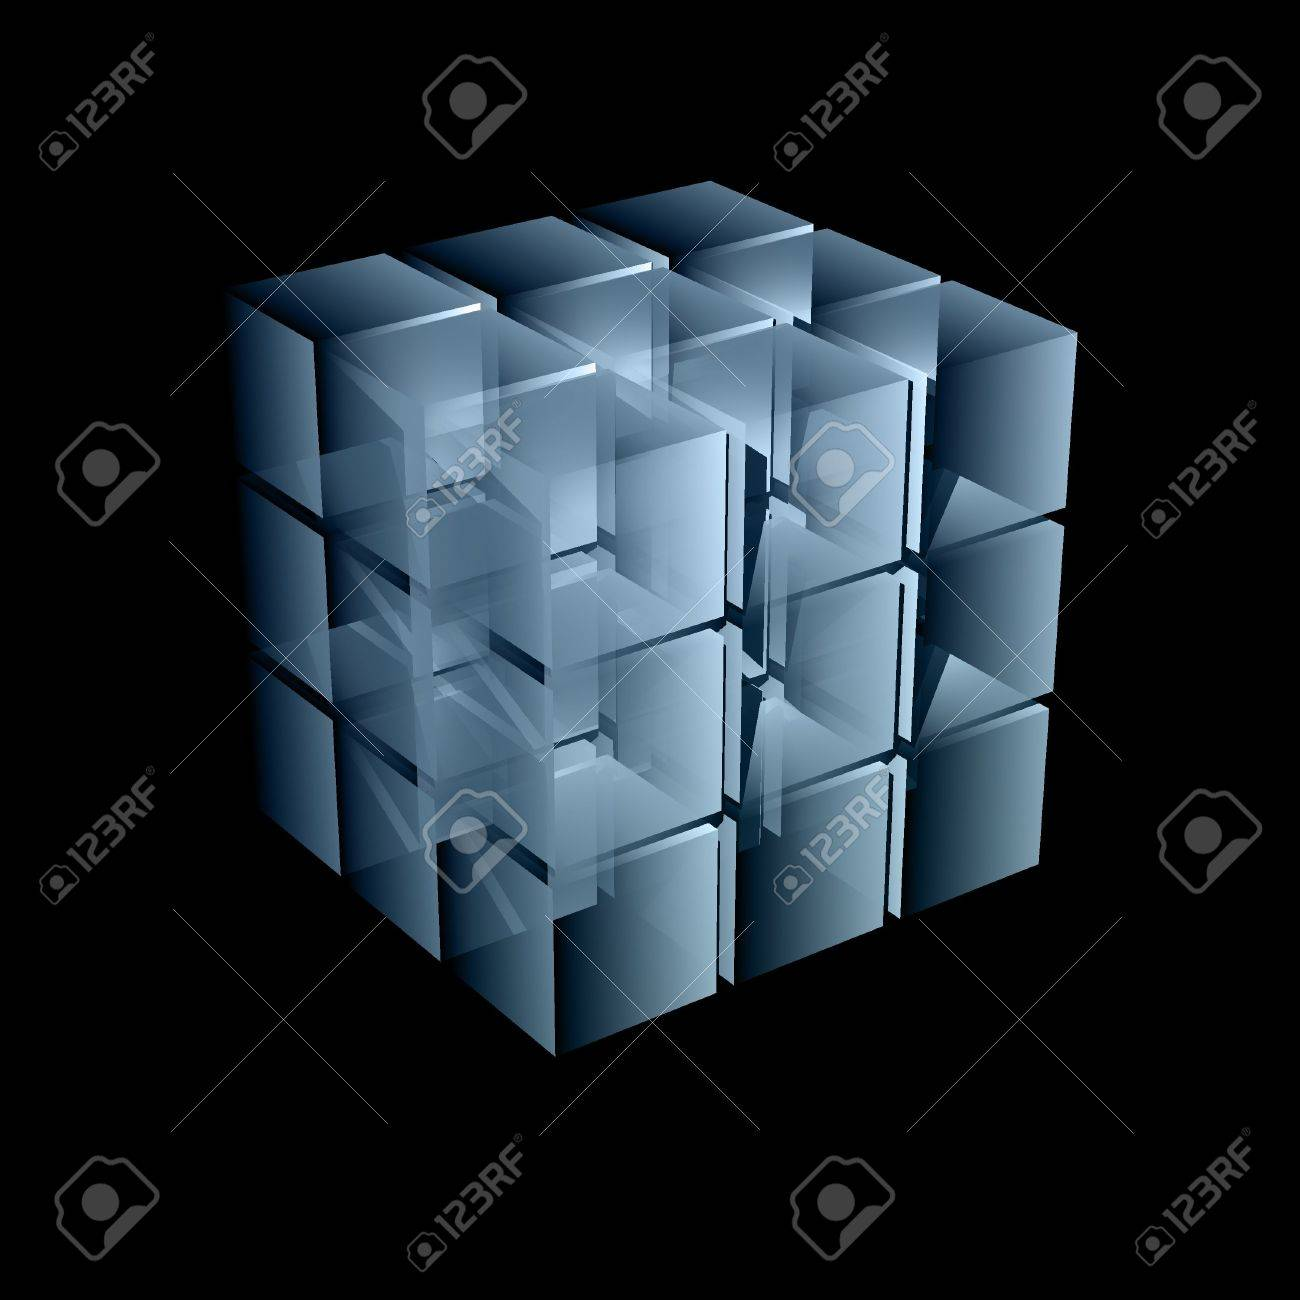 abstract transparent cube in light blue color 3d illustration Stock Photo - 6028768